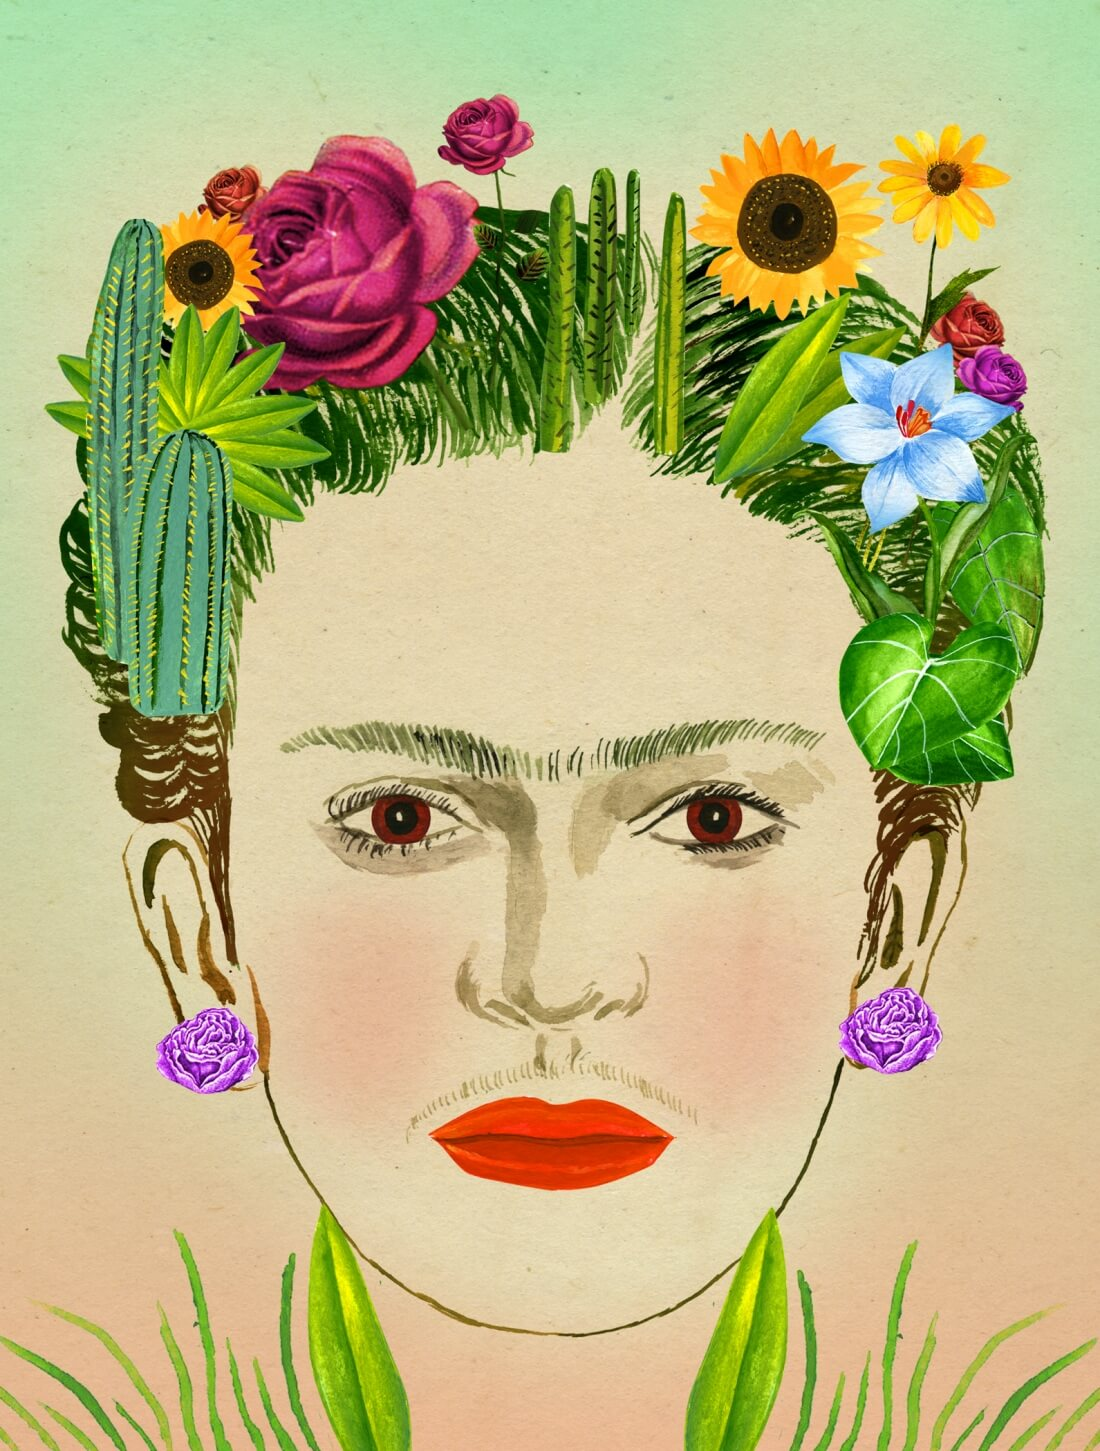 """Frida Kahlo en """"Recipes for Good Luck: The Superstitions, Rituals, and Practices of Extraordinary People"""". Ilustración: Ellen Weinstein"""